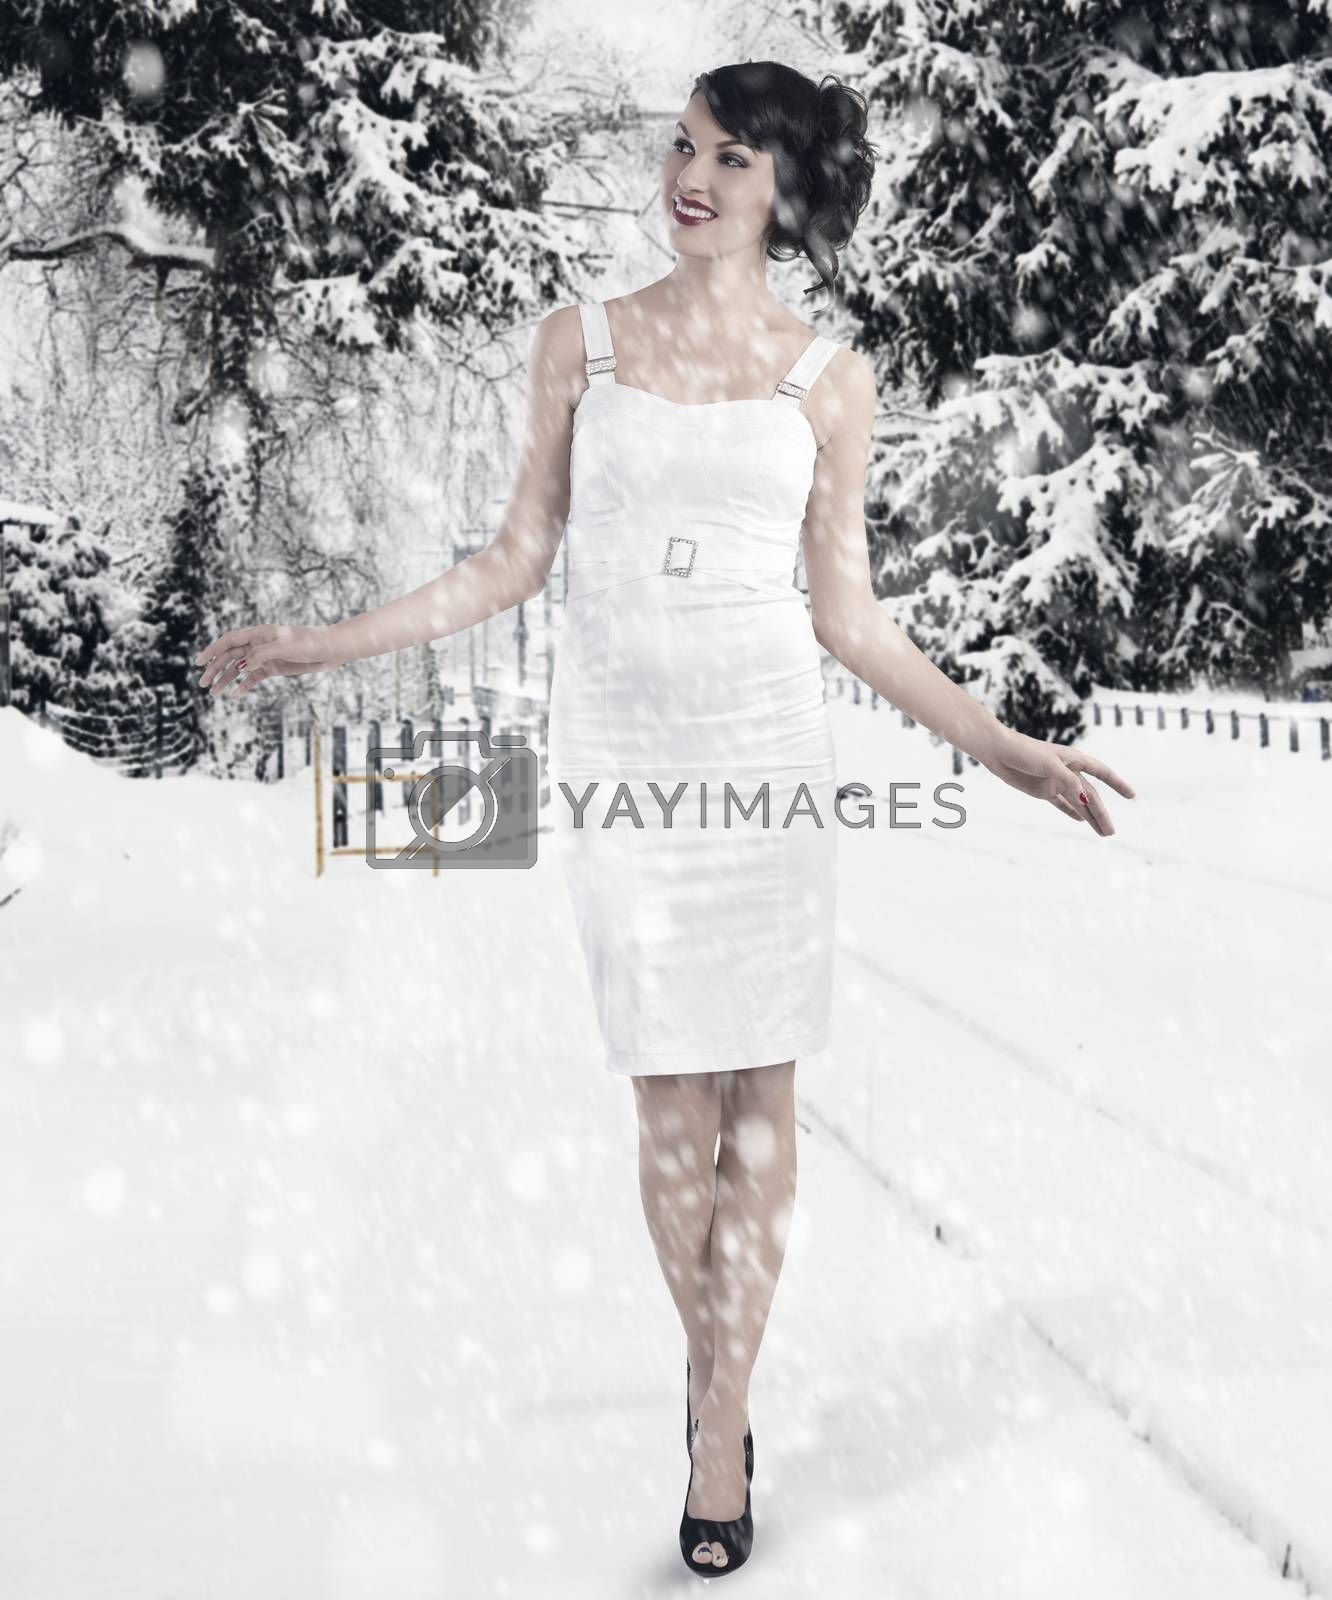 Royalty free image of preety girl between the christmas ball by fotoCD